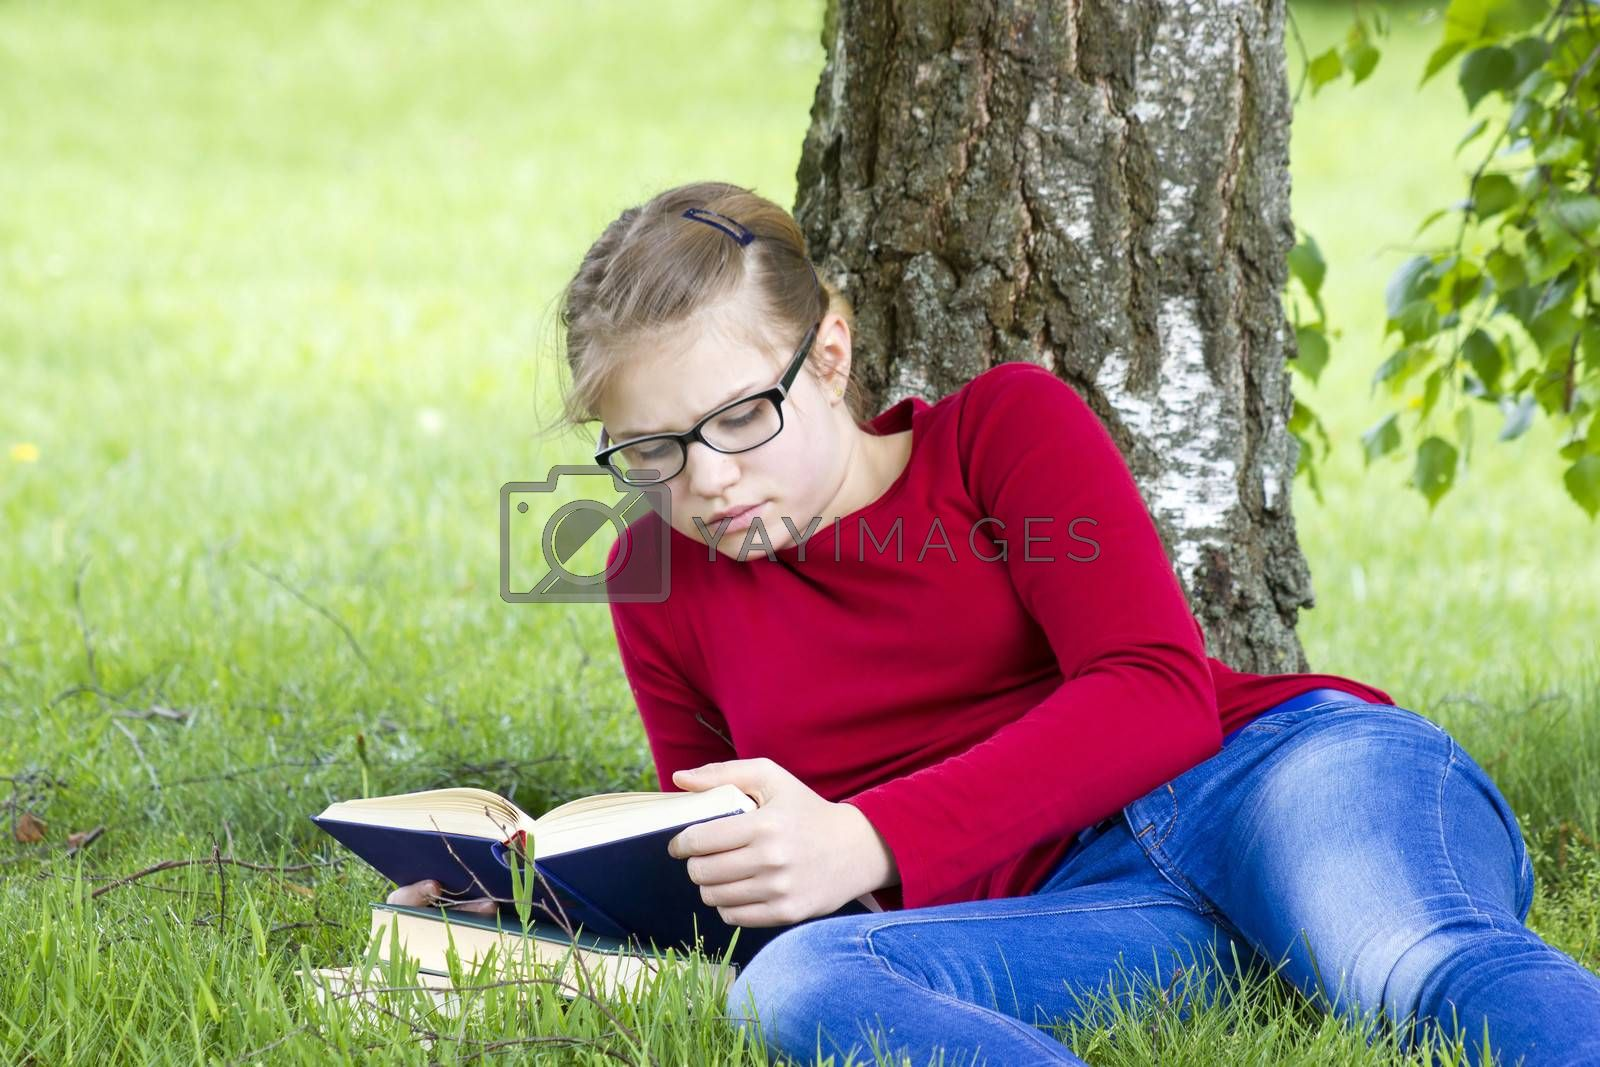 Young girl reading book in park in spring day